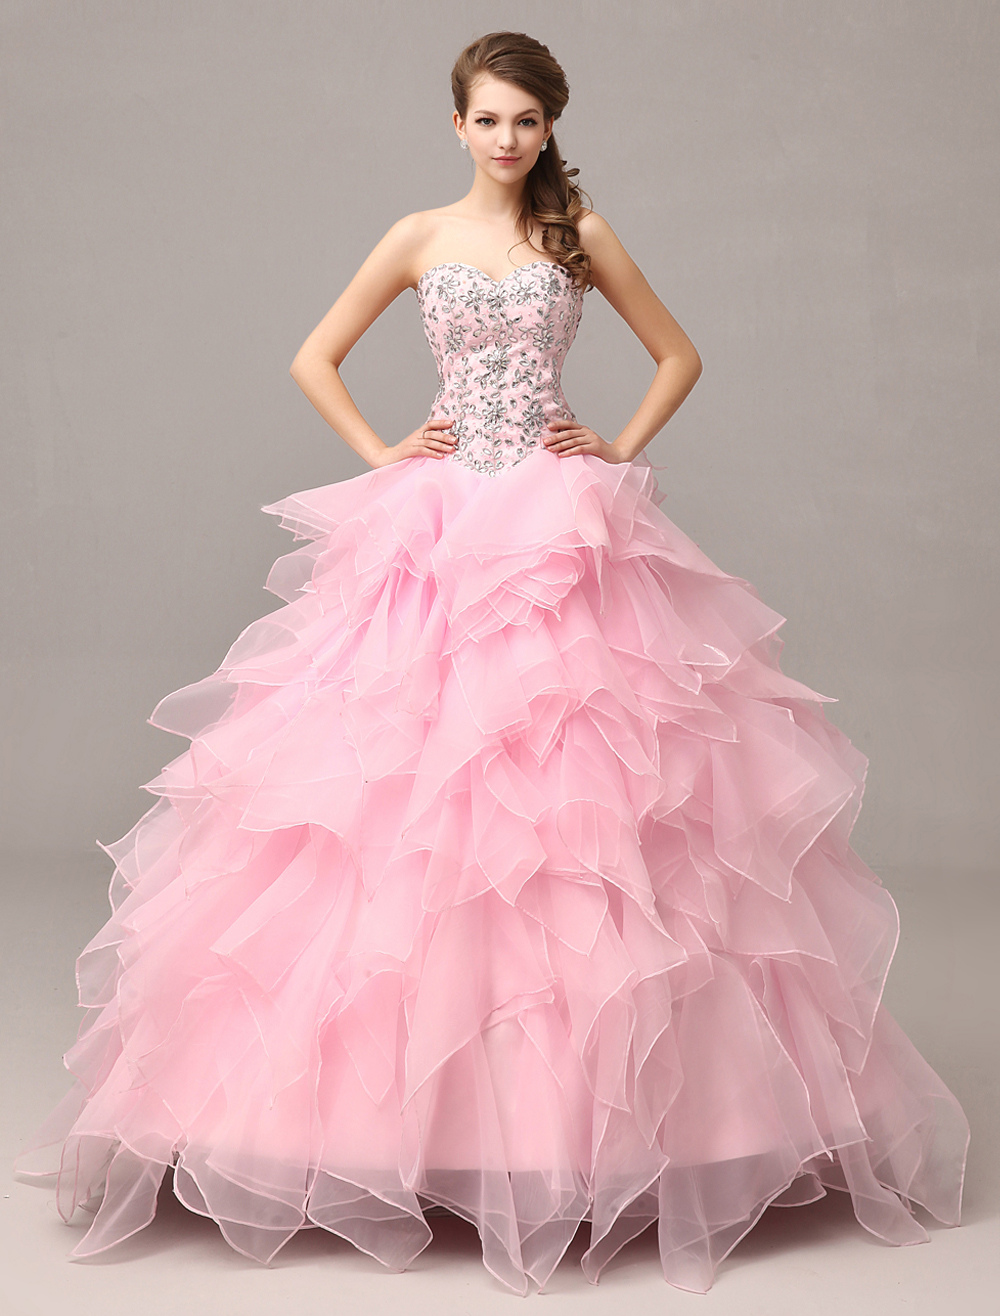 Pink Prom Dresses 2018 Long Organza Tiered Ruffles Quinceanera Dresses Ball Gown Sweetheart Strapless Beading Occasion Dress